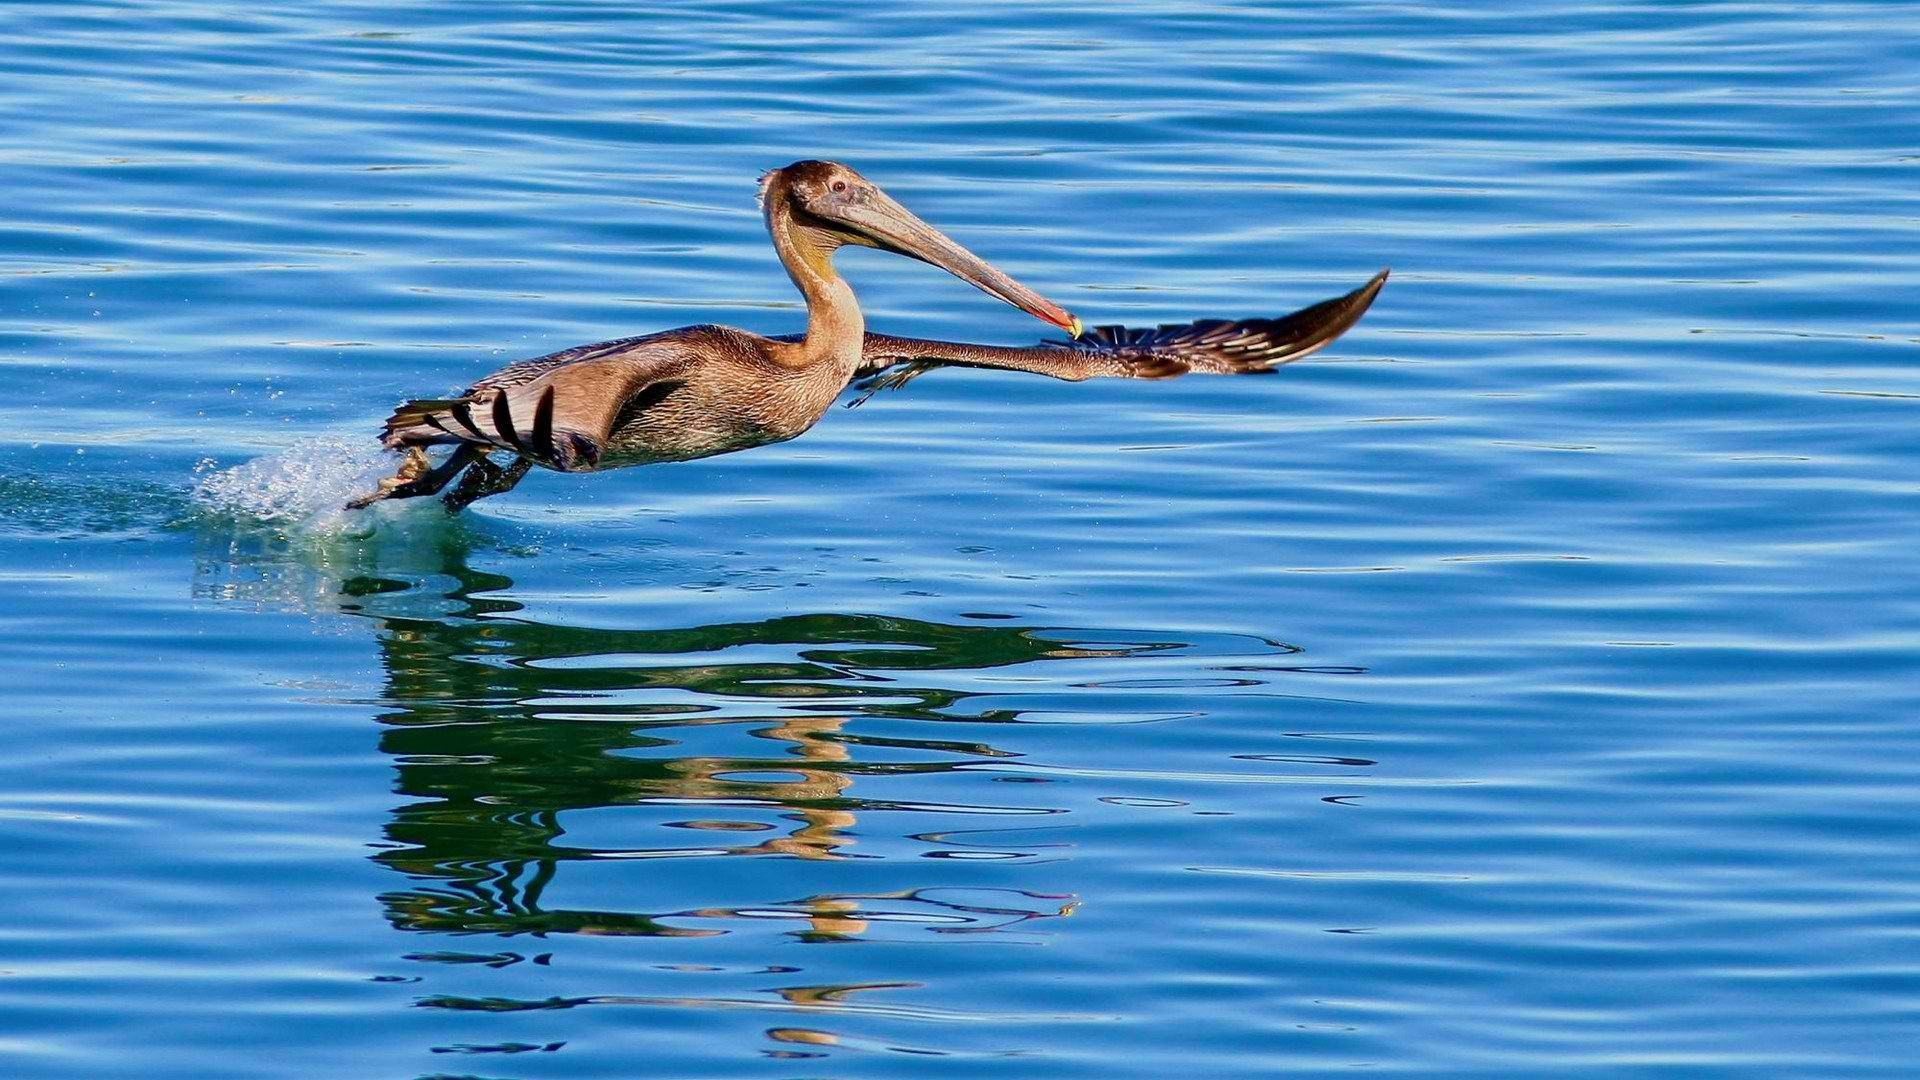 115605 download wallpaper Animals, California Pelican, Water, Bird, Hunting, Hunt, Flight screensavers and pictures for free